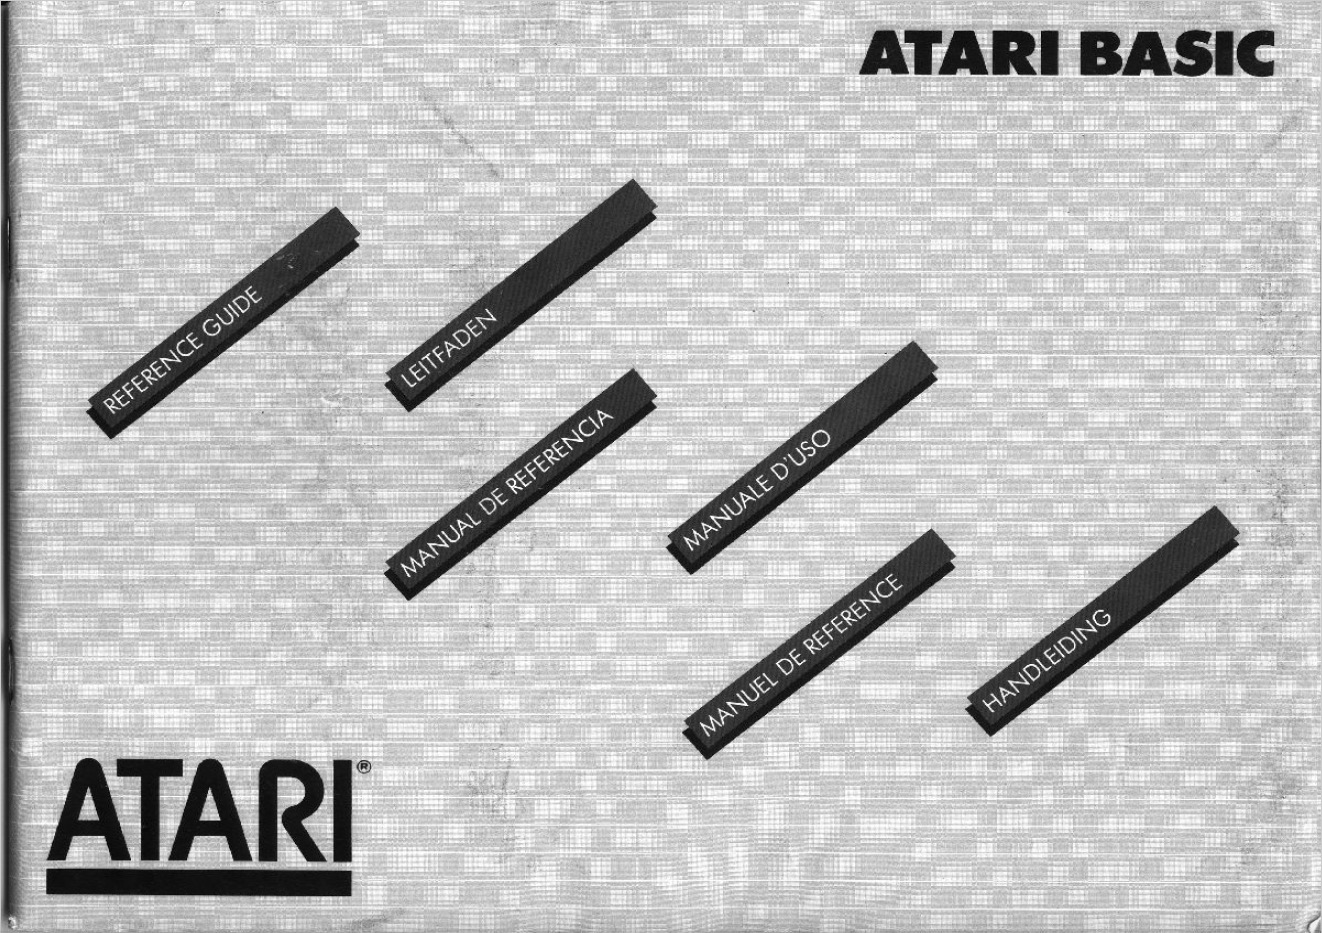 Atari BASIC/Atari_Basic_Reference_Guide_XL.jpg